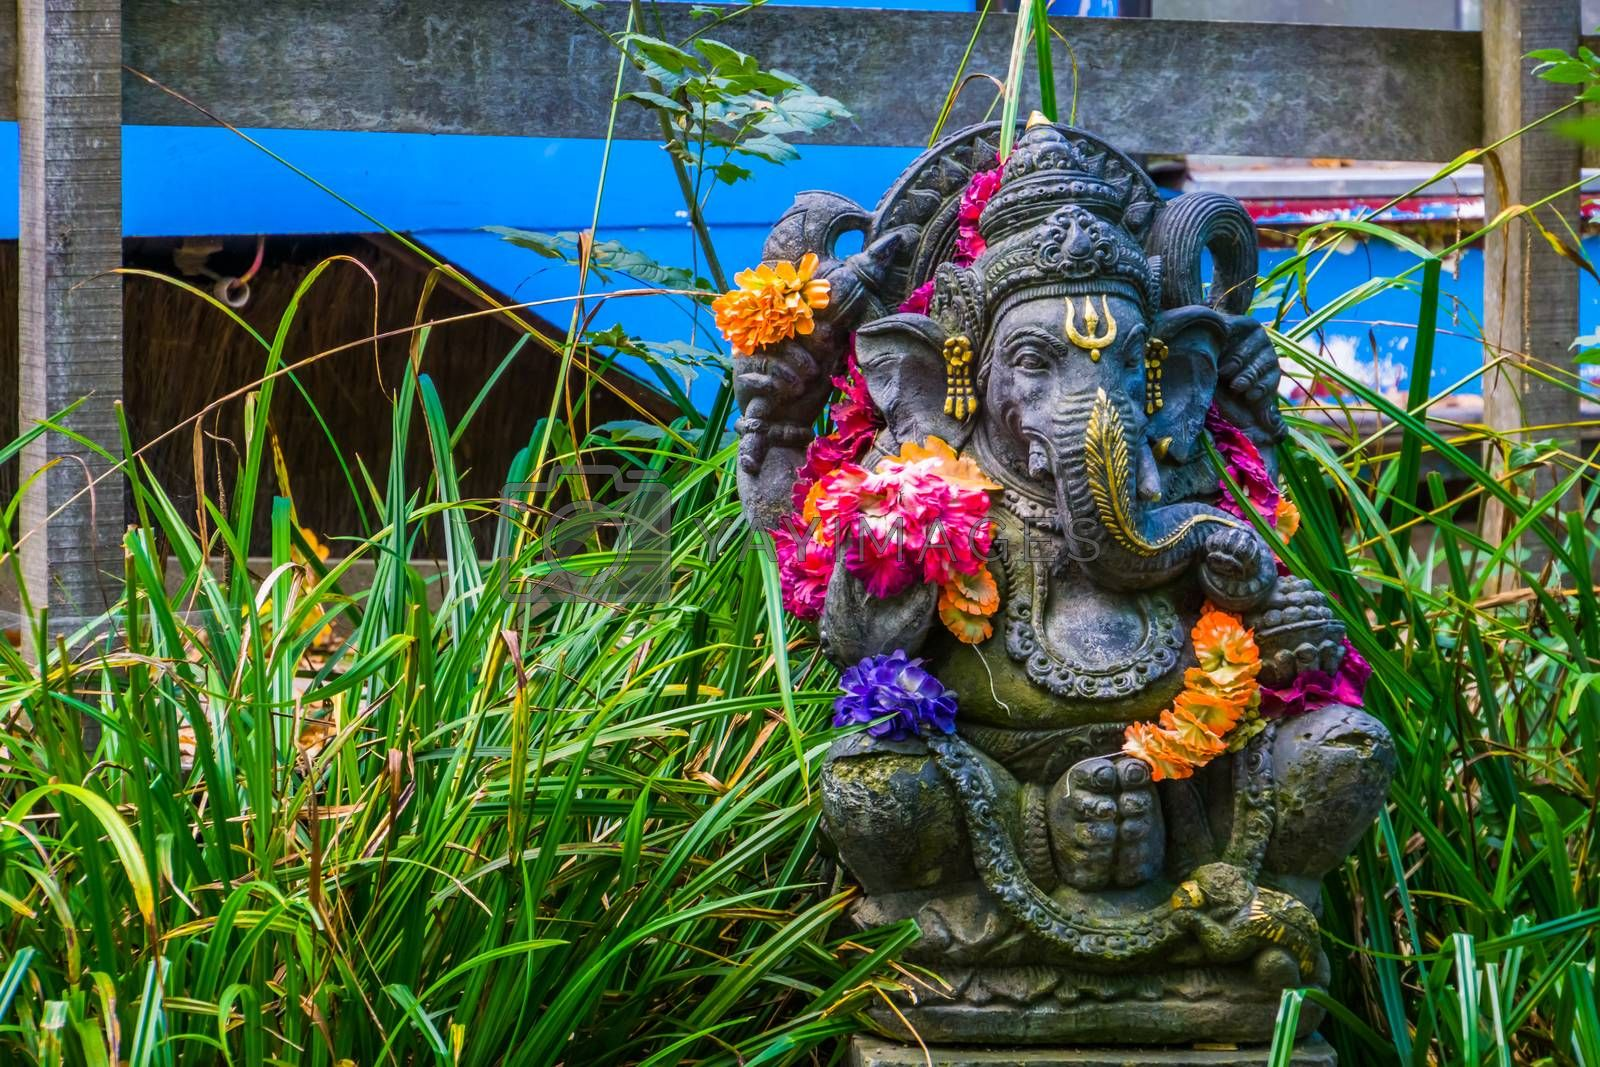 beautiful Ganesha sculpture, Indian elephant god, spiritual garden decorations by charlottebleijenberg